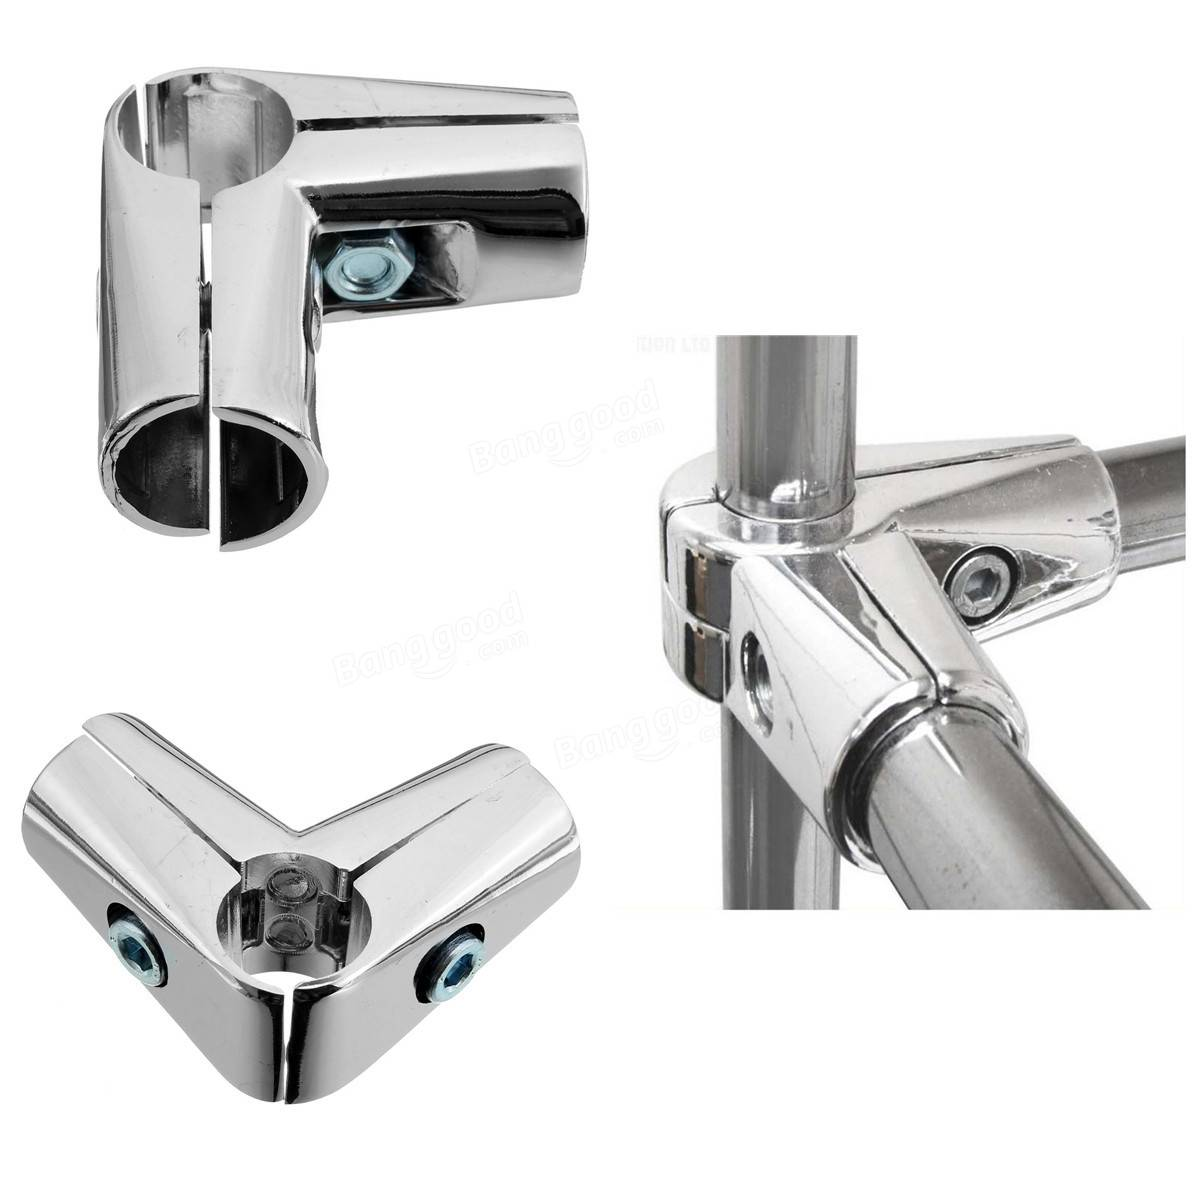 3 Way 25mm Elbow Tube Clamp L Shaped Pipe Fitting ...